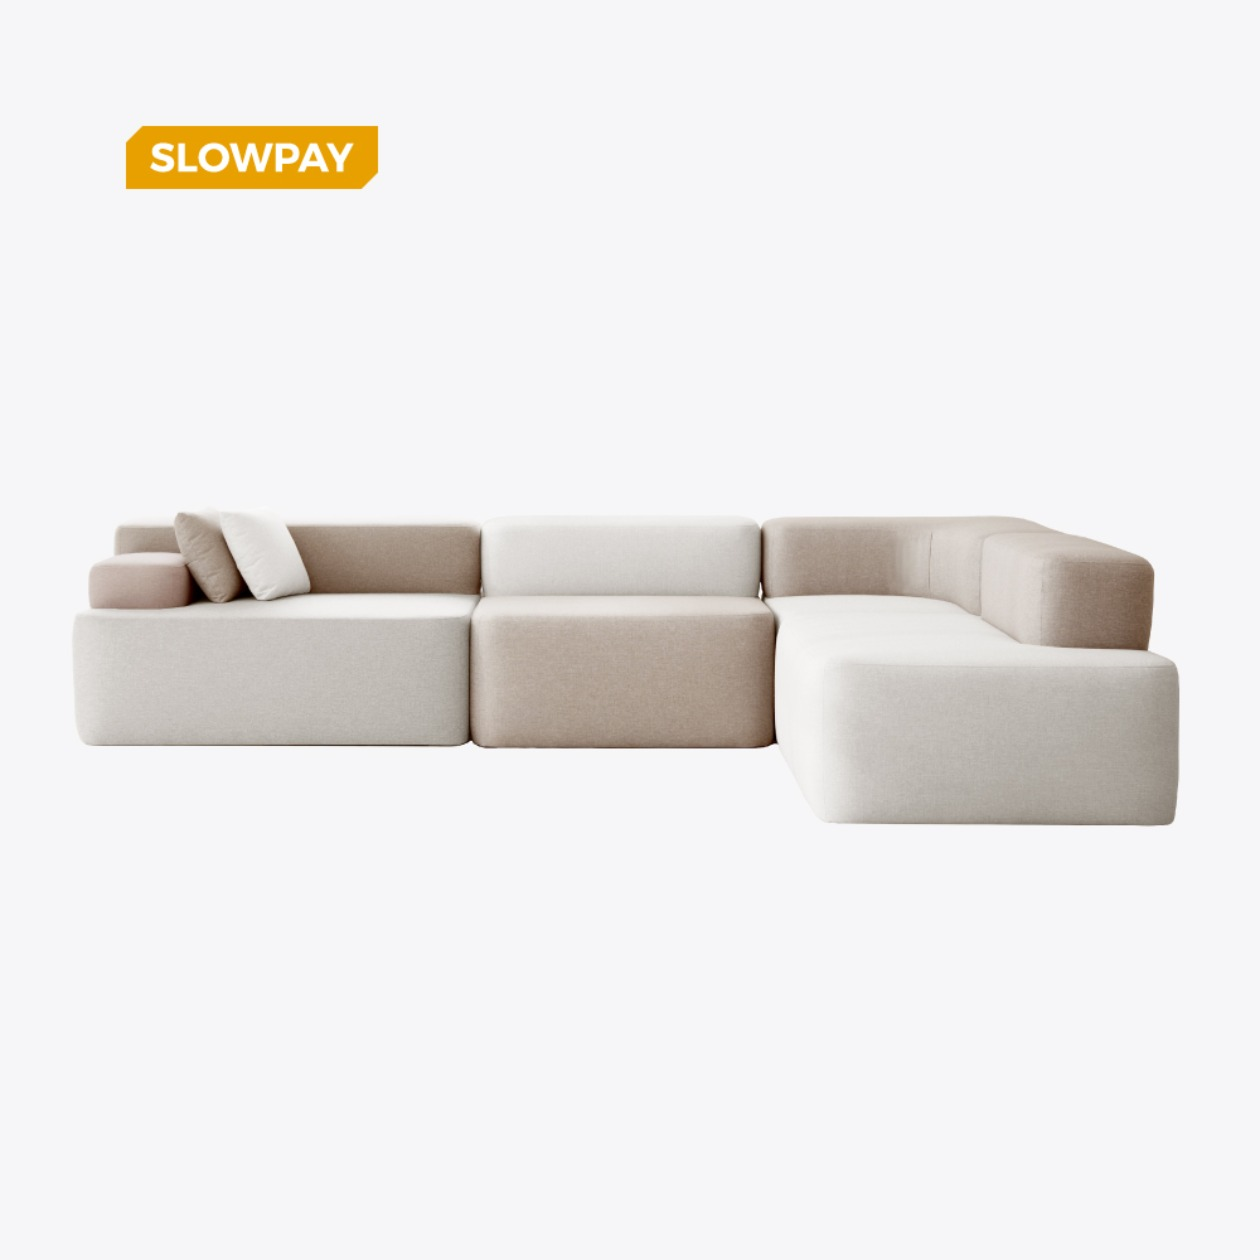 [SLOW PAY] ABLE SOFA A+B+C+D